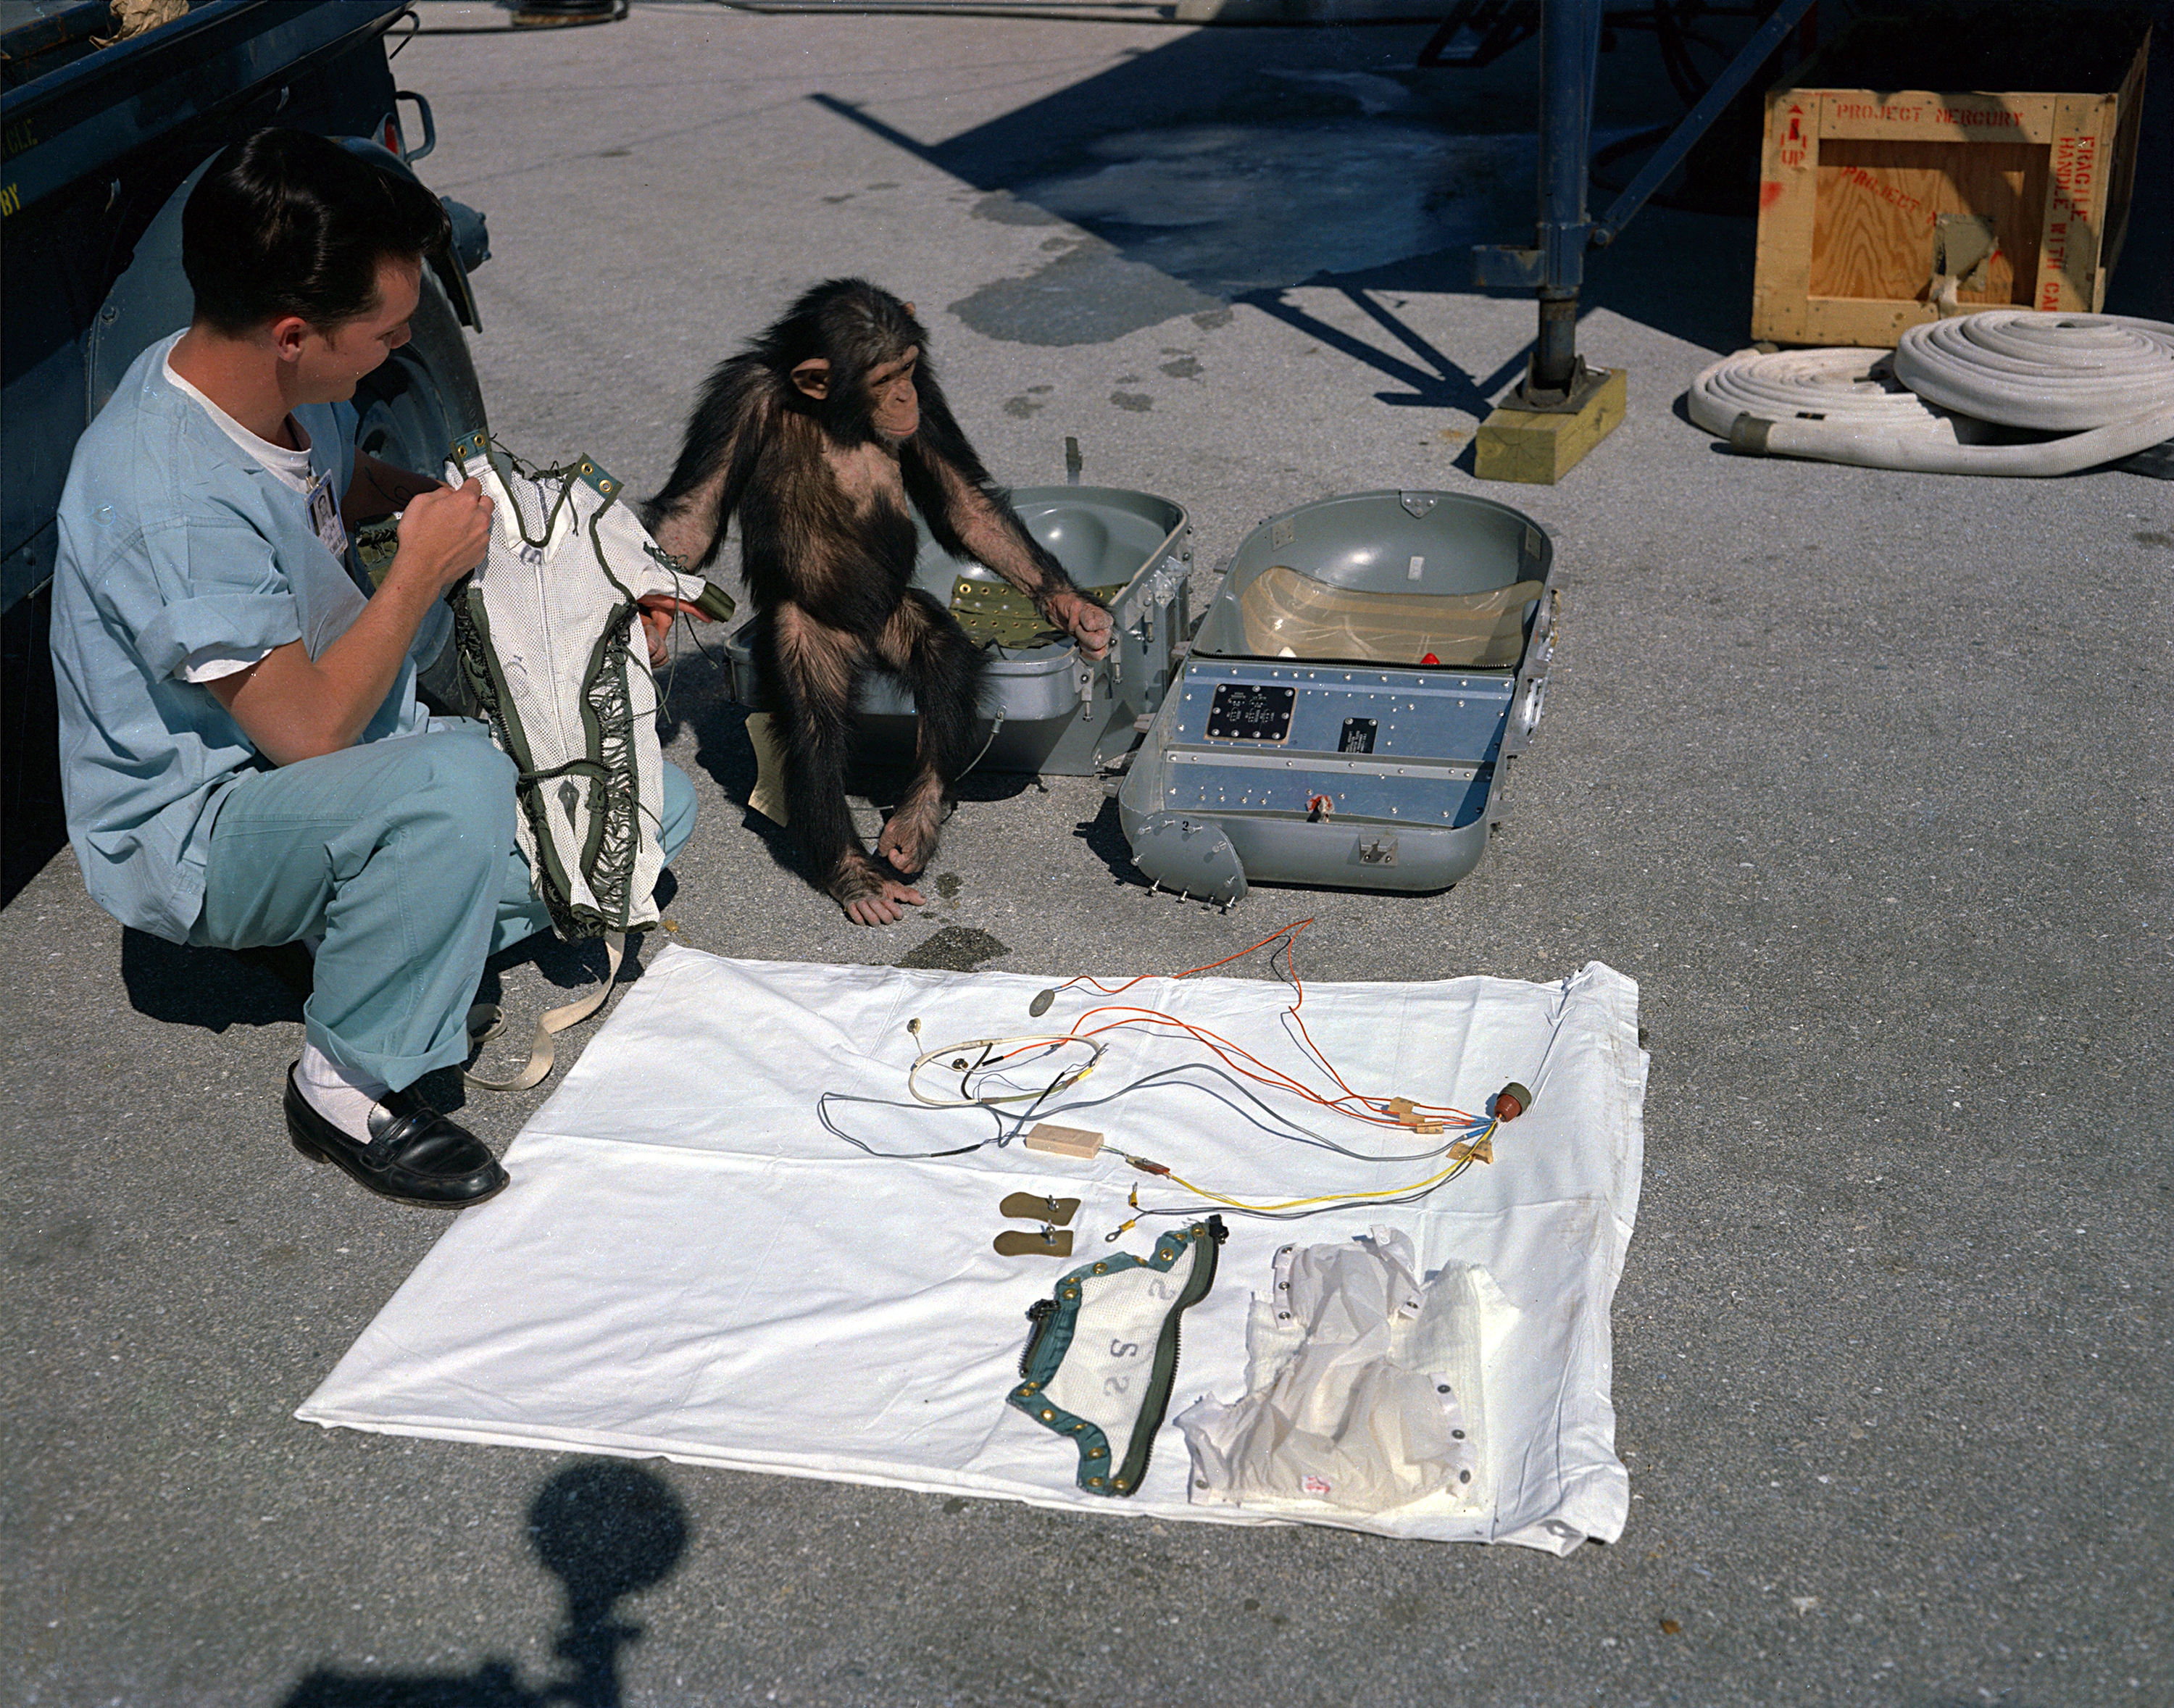 The astrochimp HAM checks out his equipment before flight